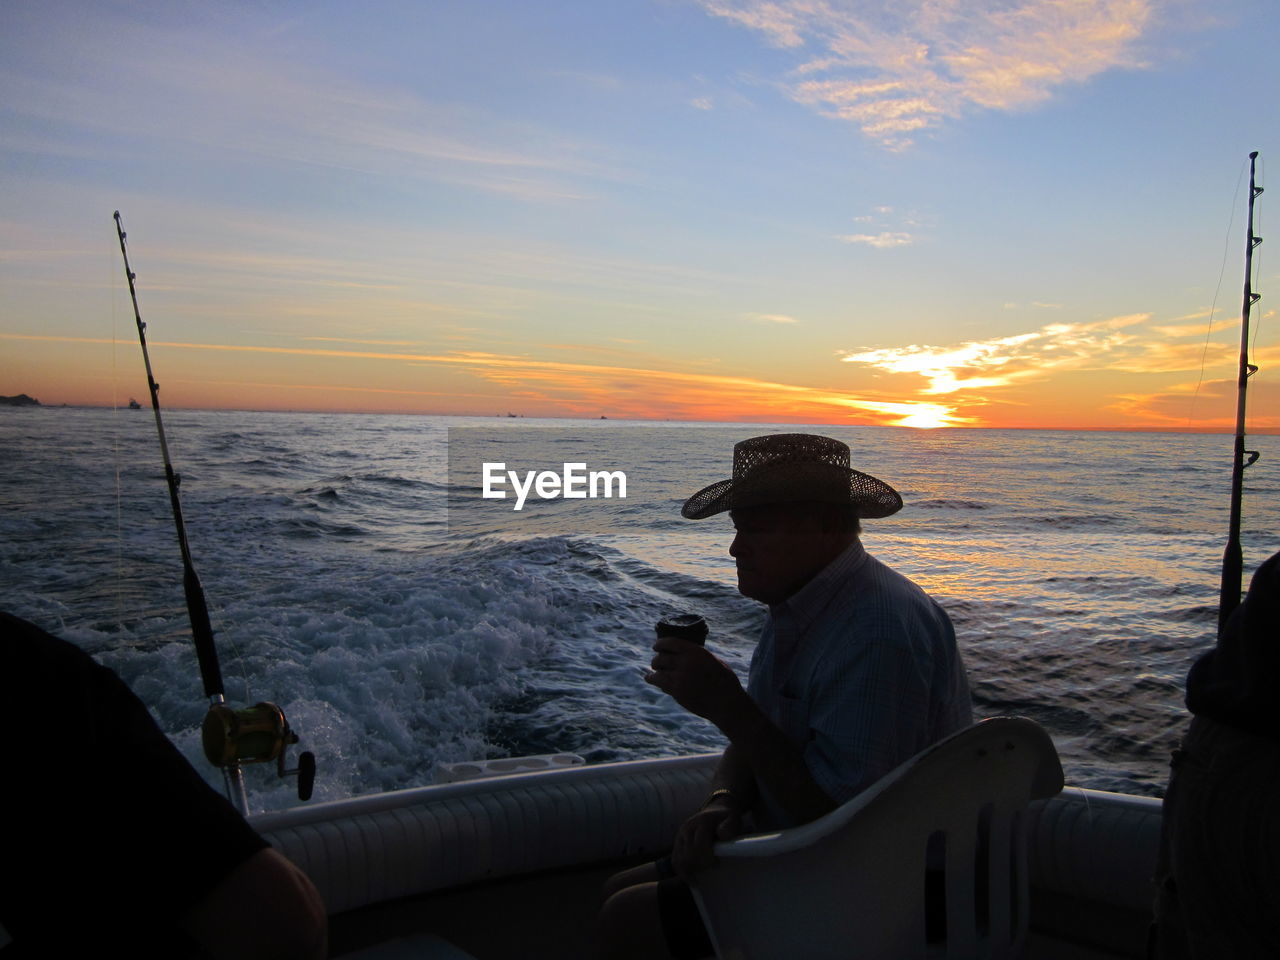 sea, sunset, real people, water, horizon over water, one person, nature, fishing, beauty in nature, fishing pole, sitting, scenics, sky, silhouette, leisure activity, men, outdoors, lifestyles, standing, wave, fishing tackle, day, people